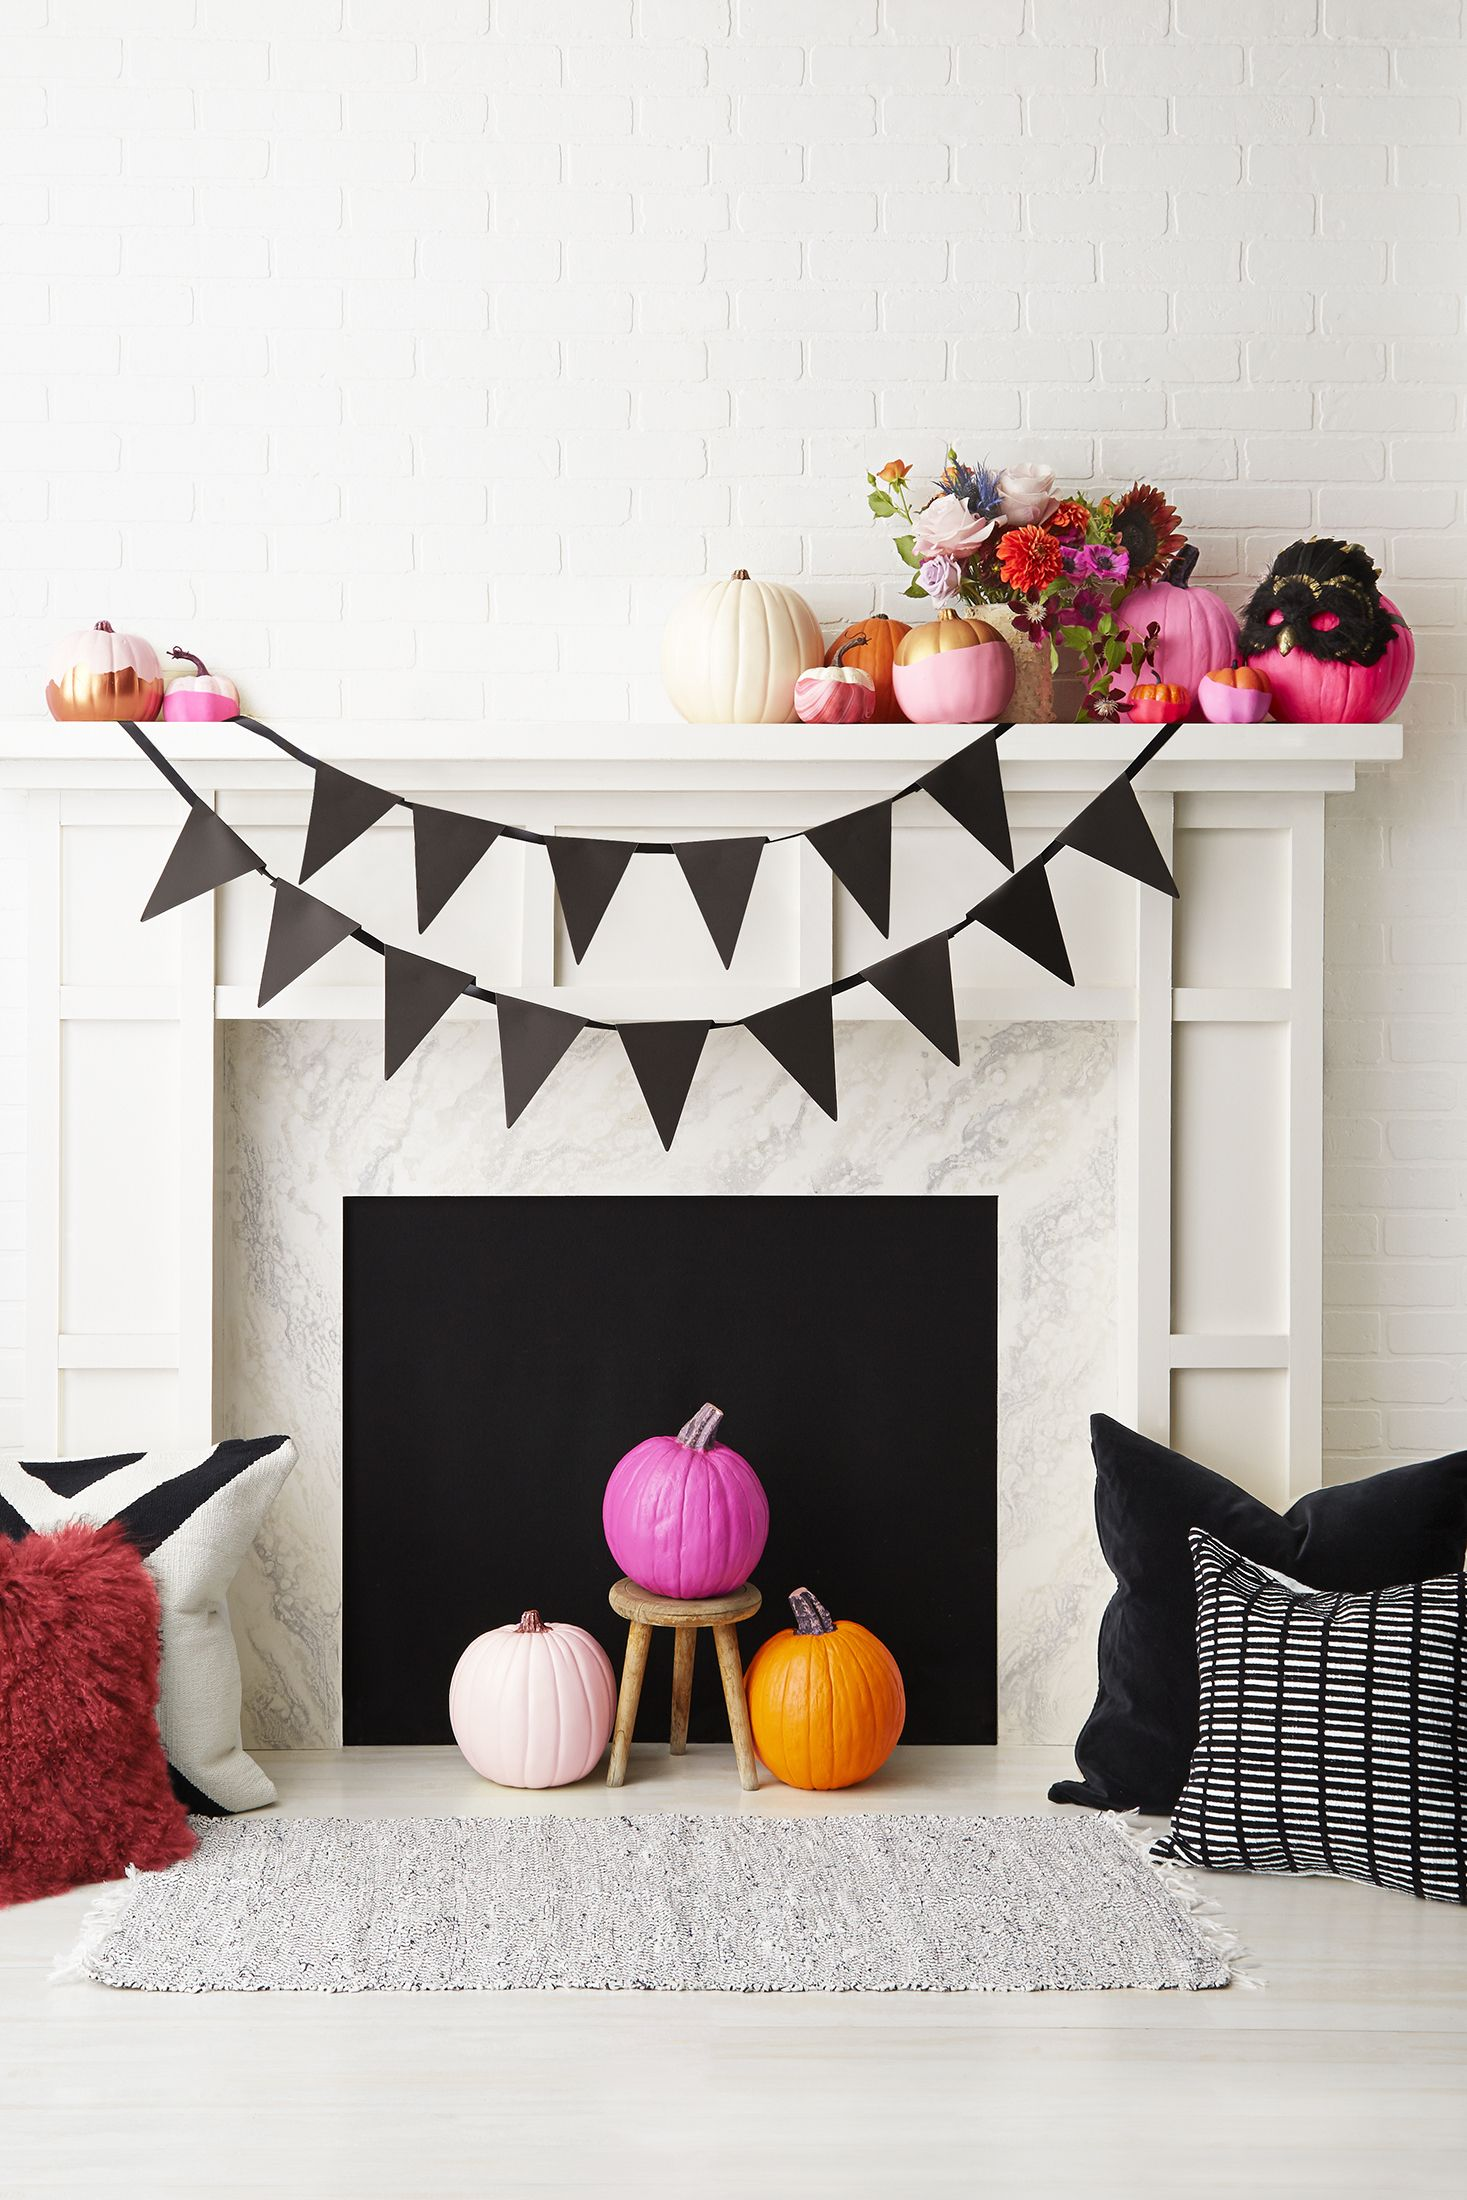 60+ Easy and Spooky DIY Halloween Decoration Ideas to Make 2019